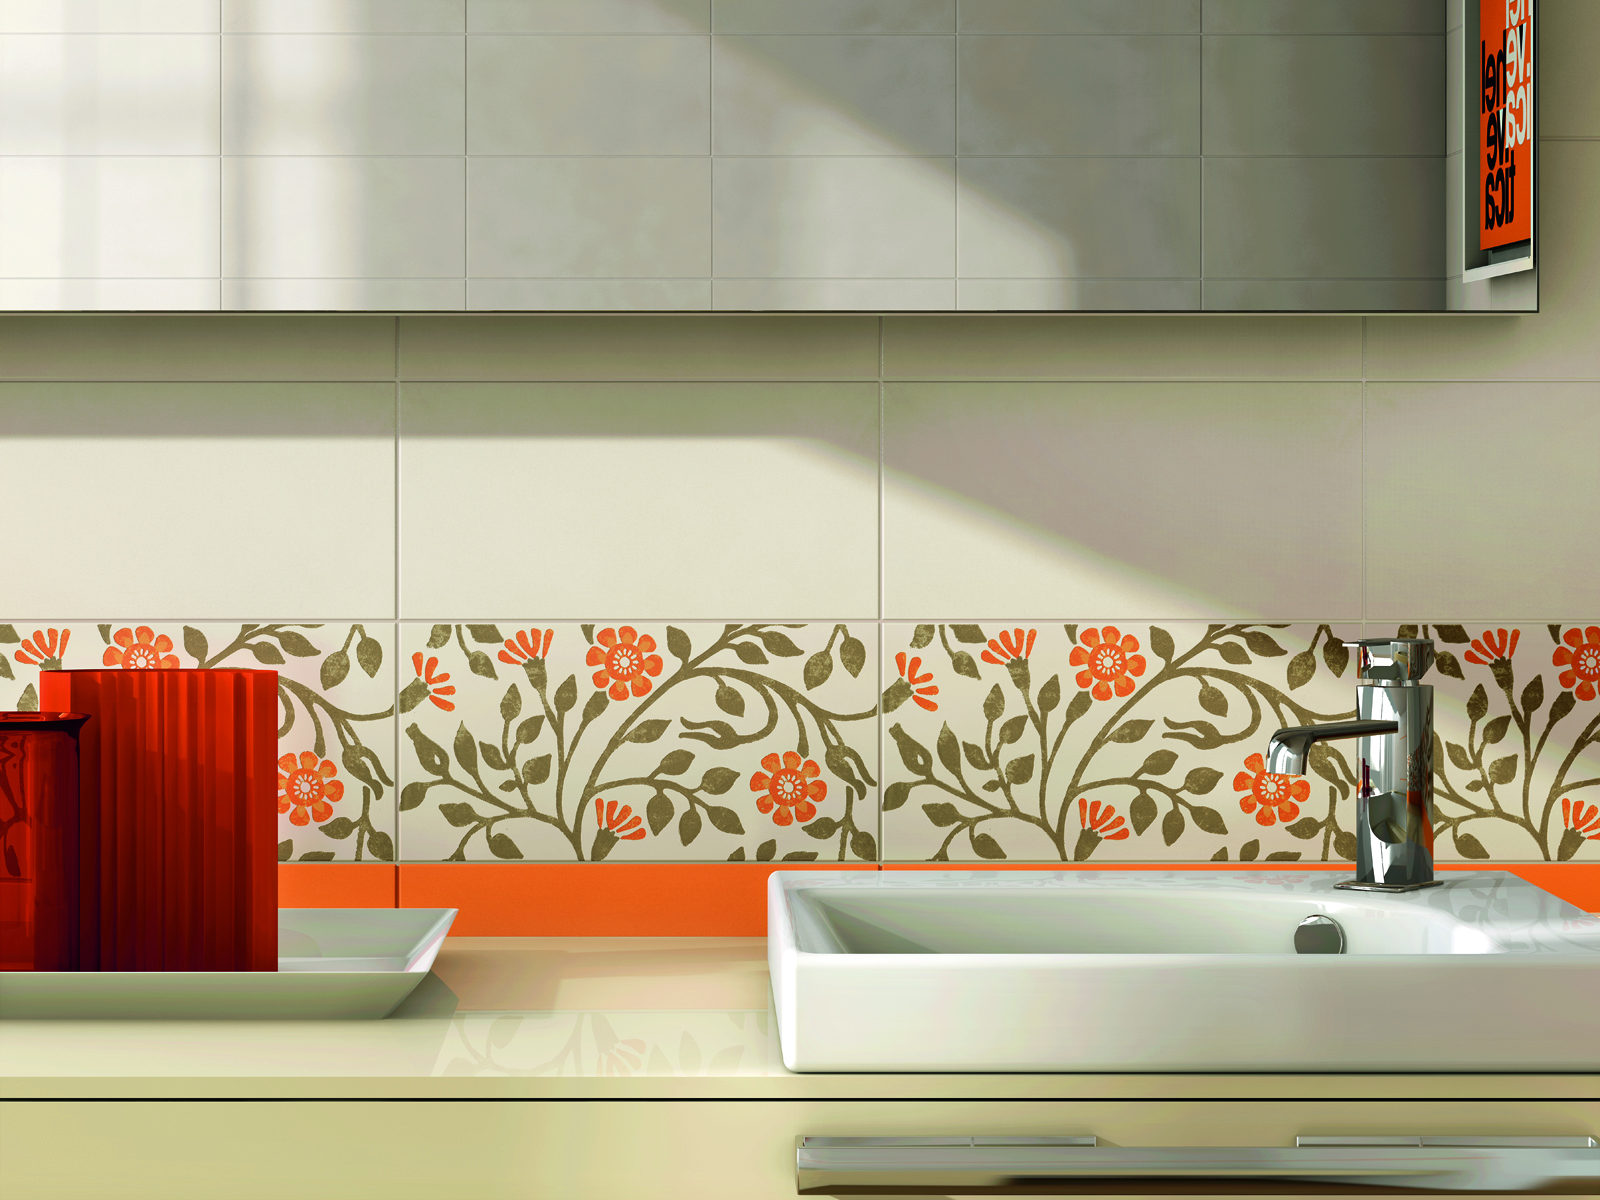 Carrelage orange: voir les collections : Marazzi : Marazzi